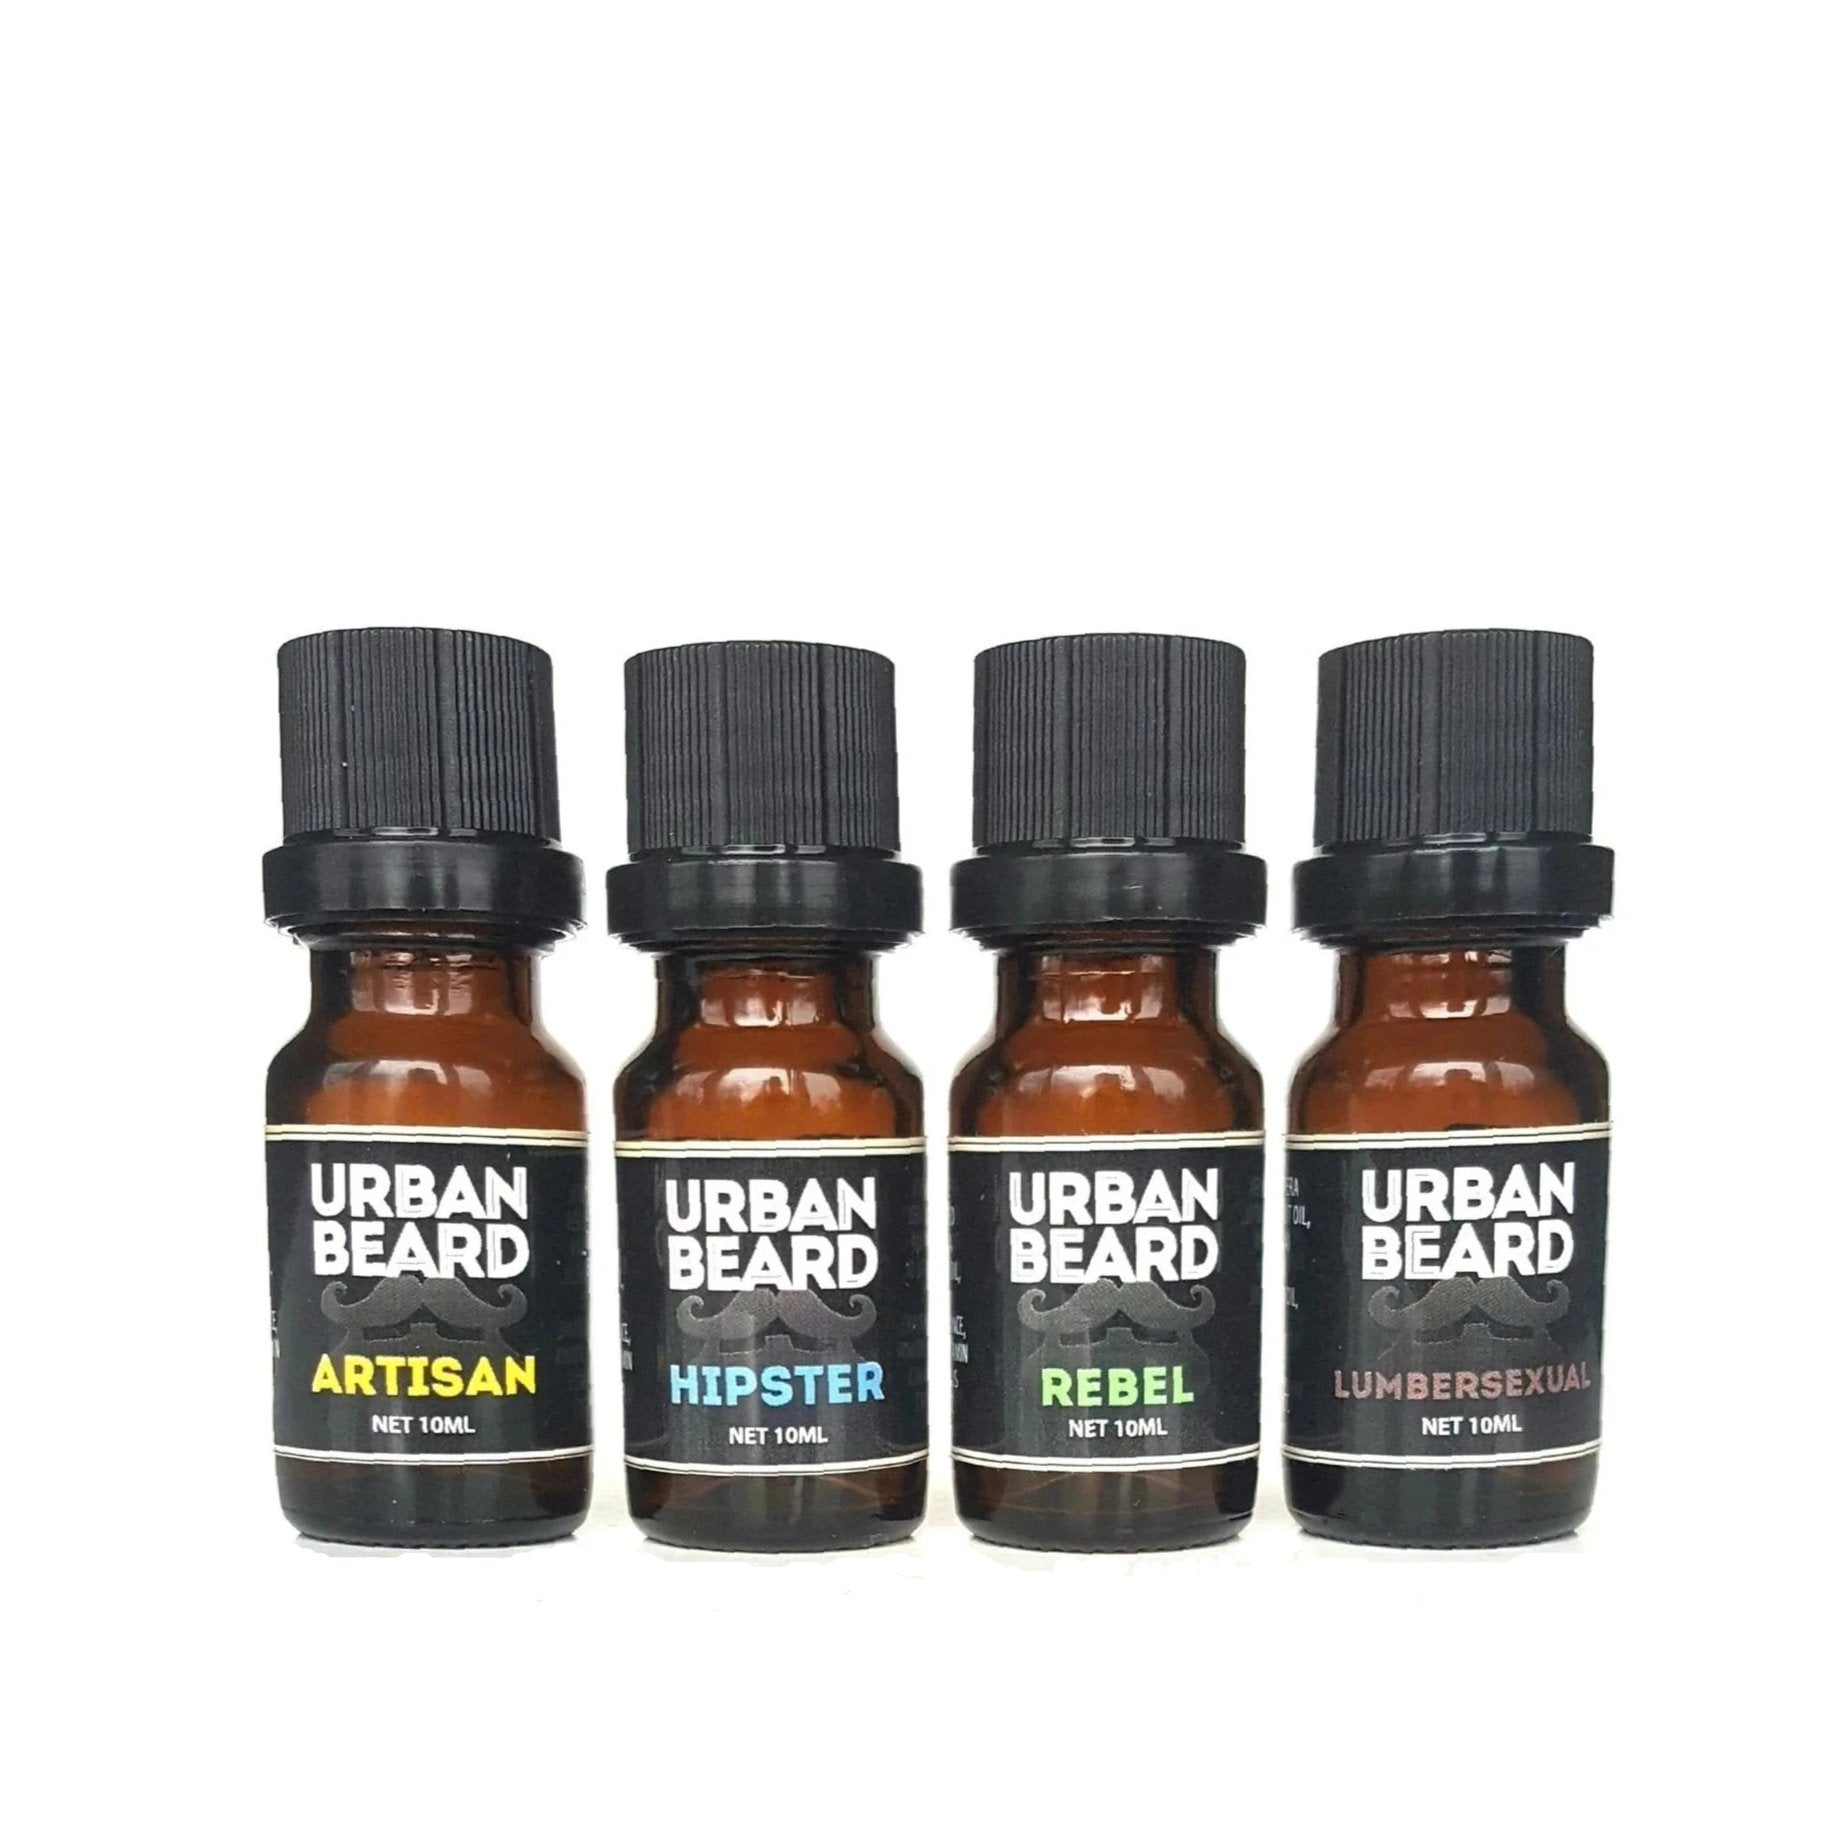 10ml size beard oil sample pack